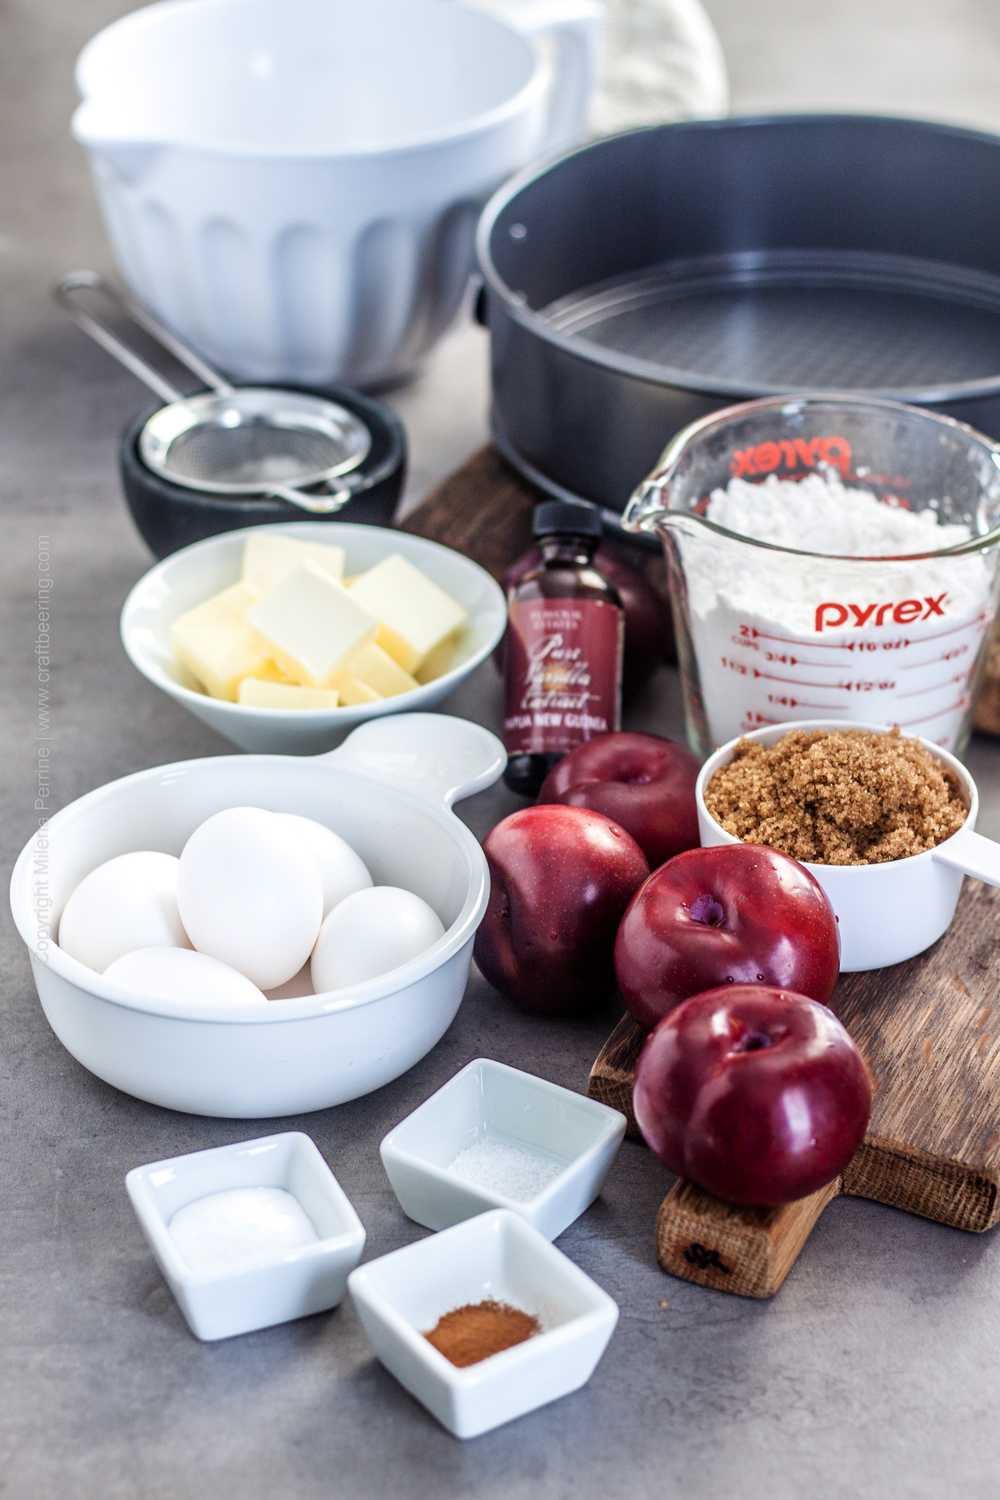 Ingredients for plum cake - eggs, sugar, flour, fresh plums, butter